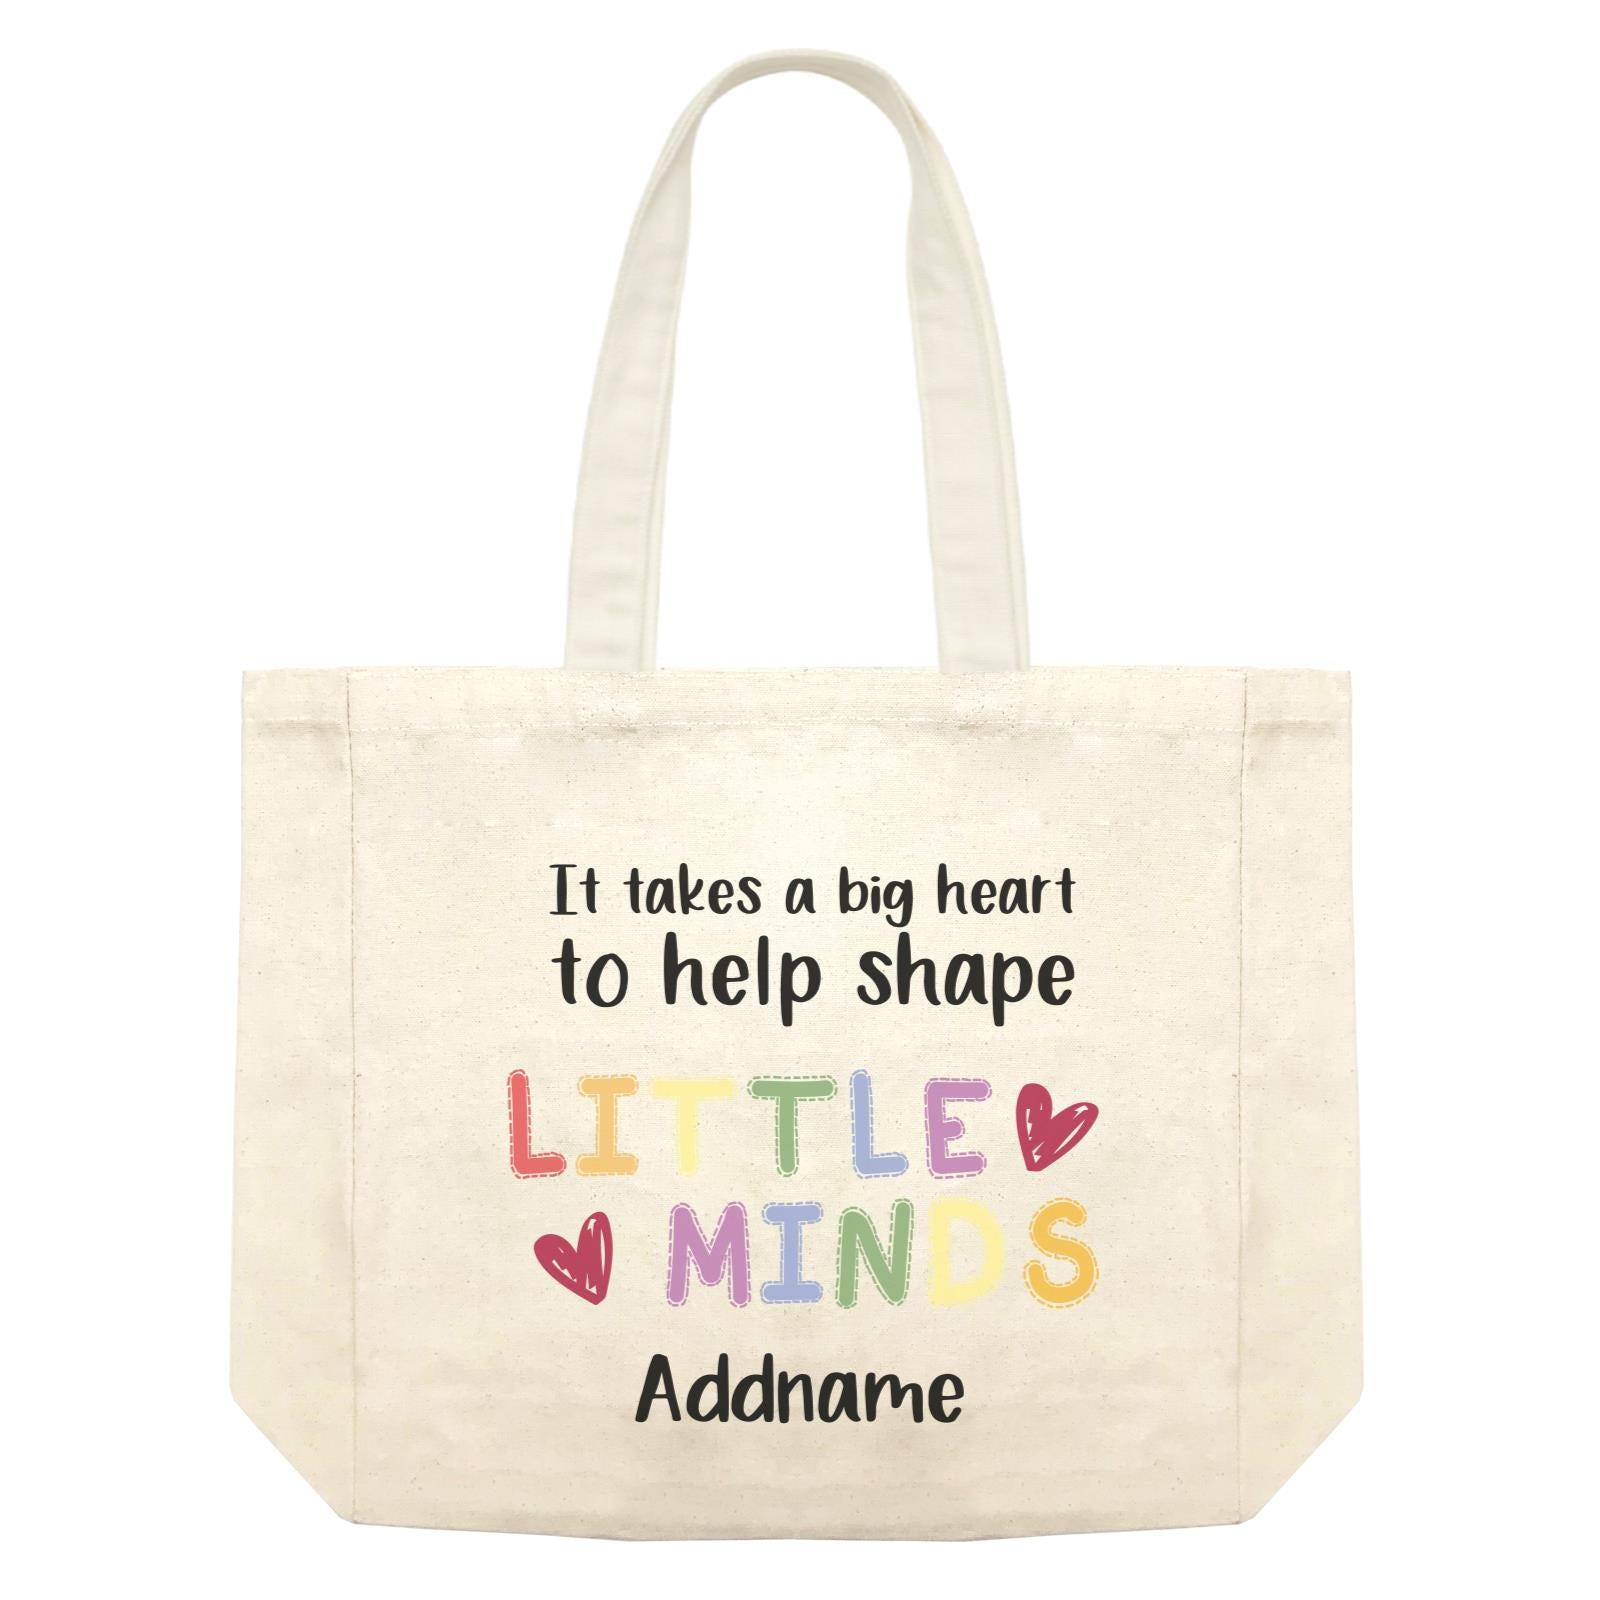 Teacher Quotes 2 It Takes A Big Heart To Help Shape Little Minds Addname Shopping Bag